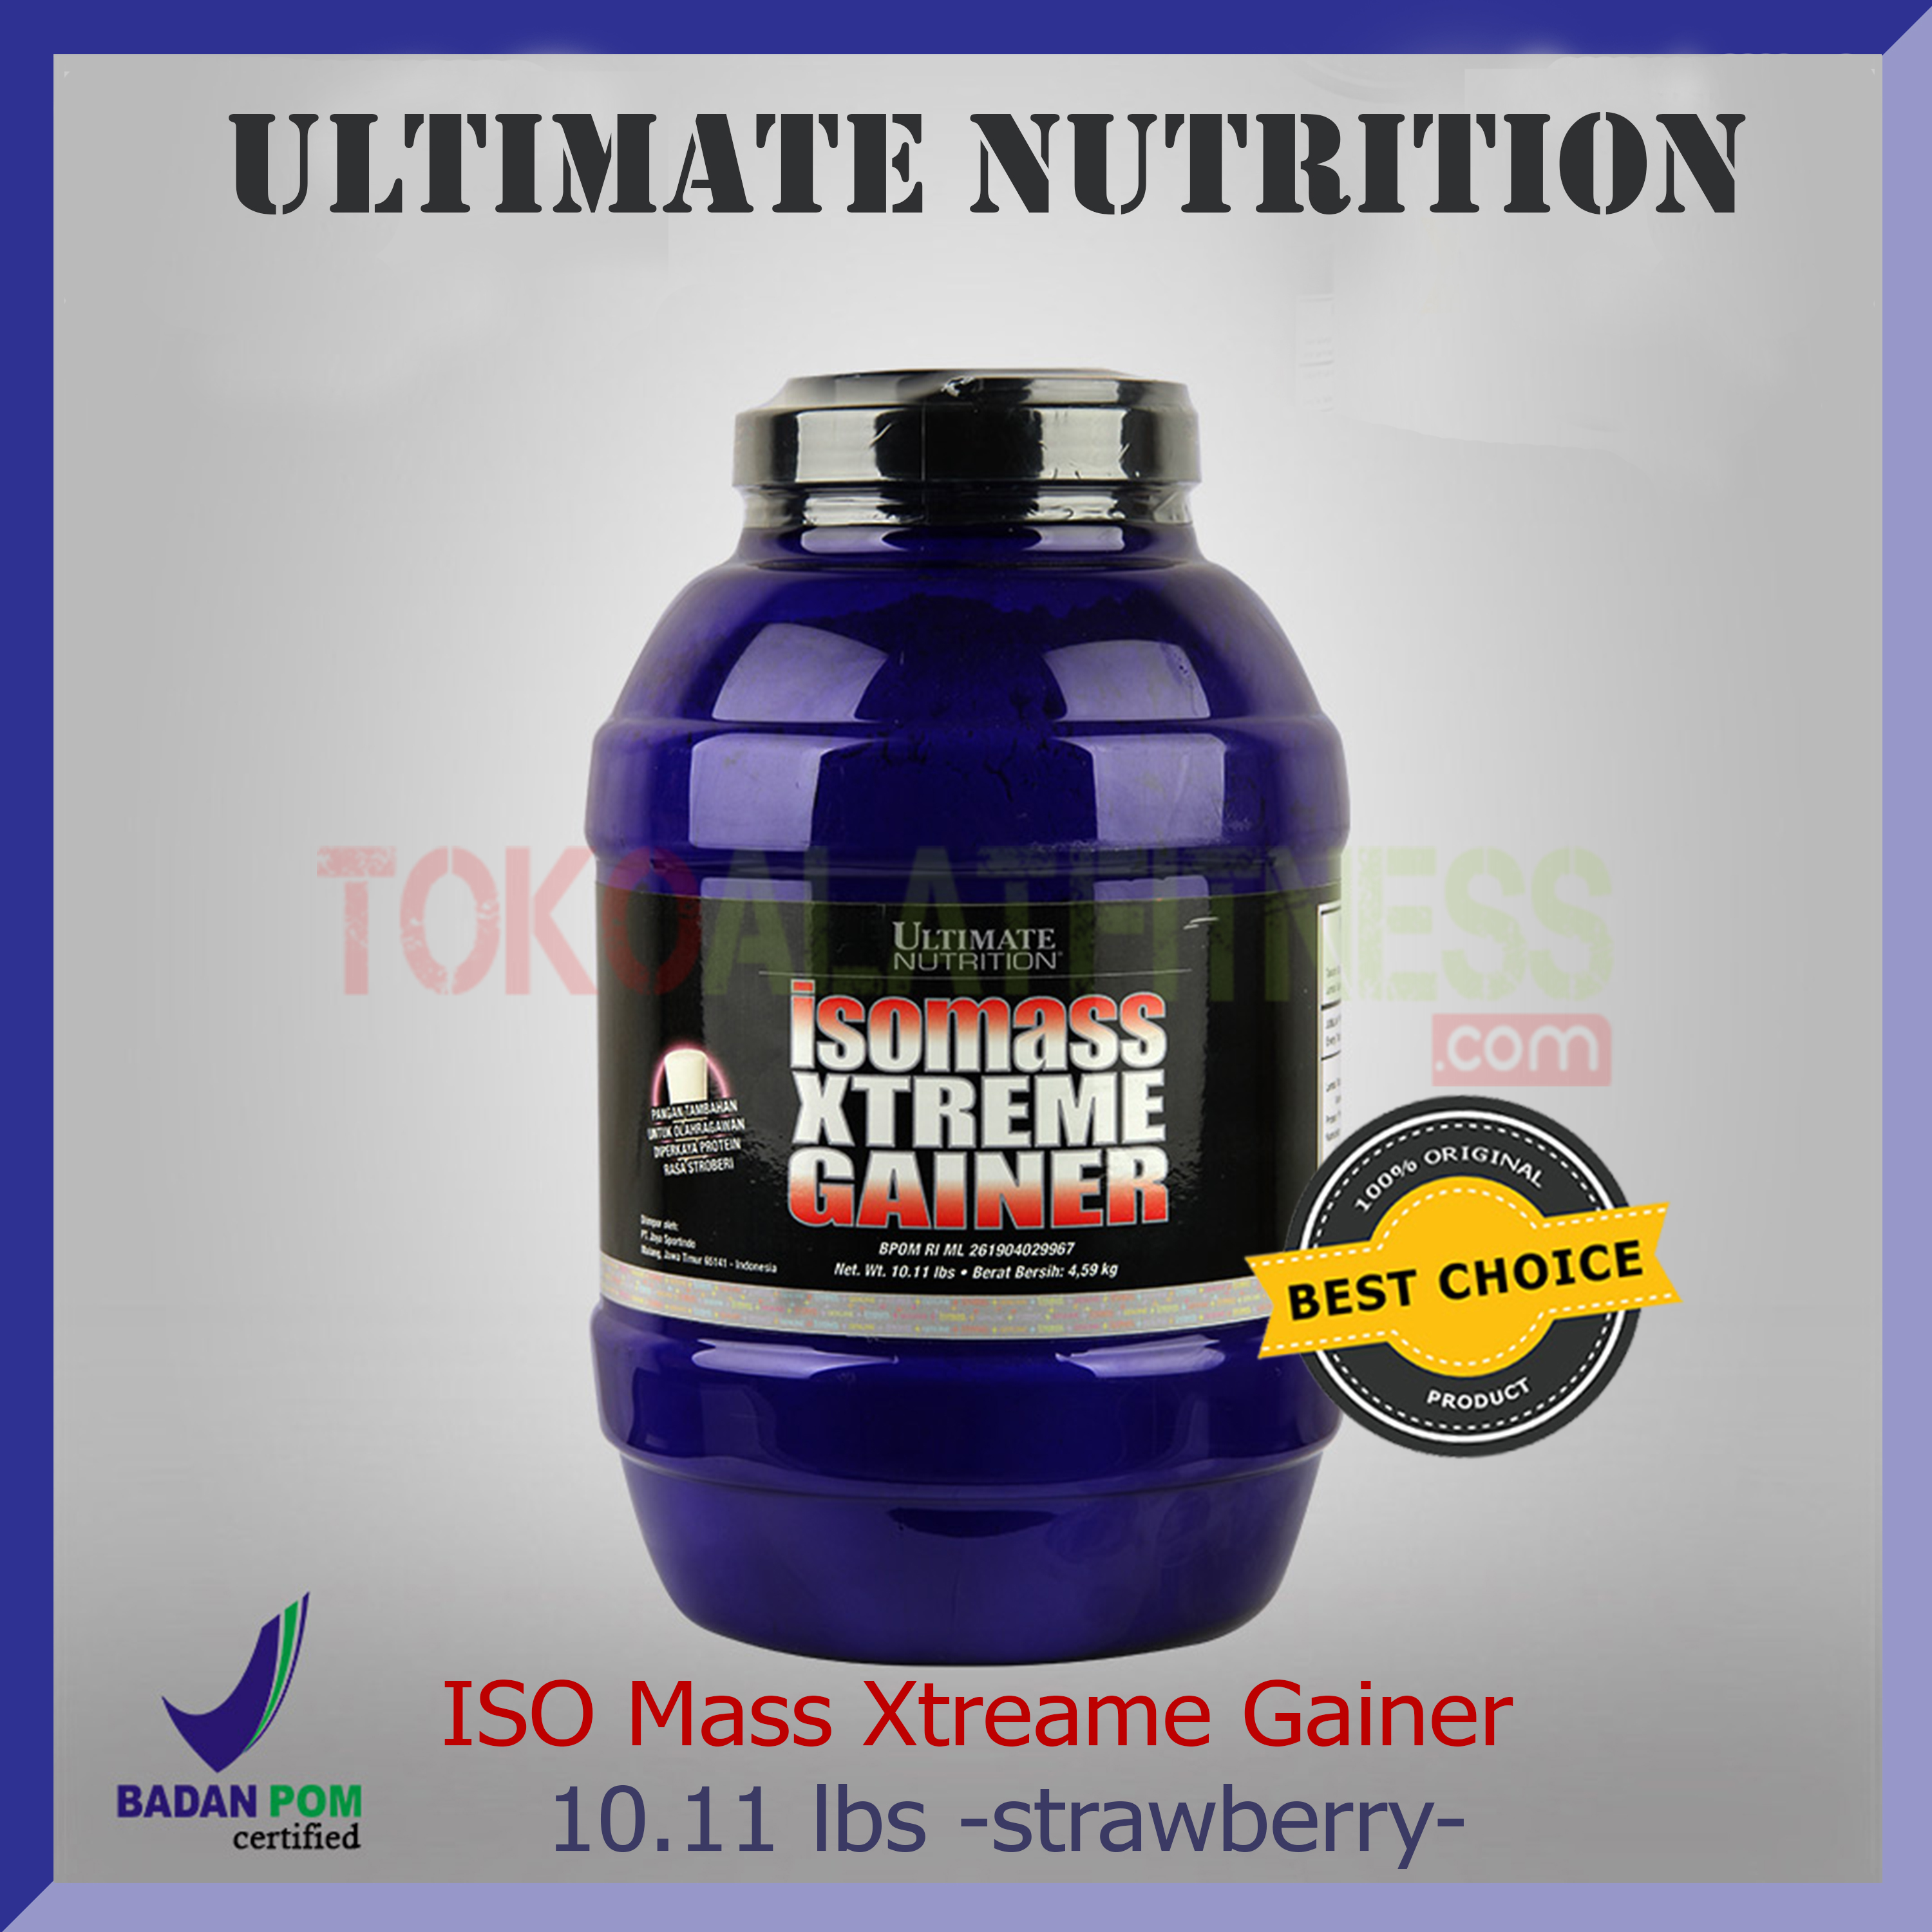 ULTIMATE NUTRITION ISO Mass Xtreme Gainer 10 - Suplemen Ultimate Iso Mass Xtreme Gainer Choco